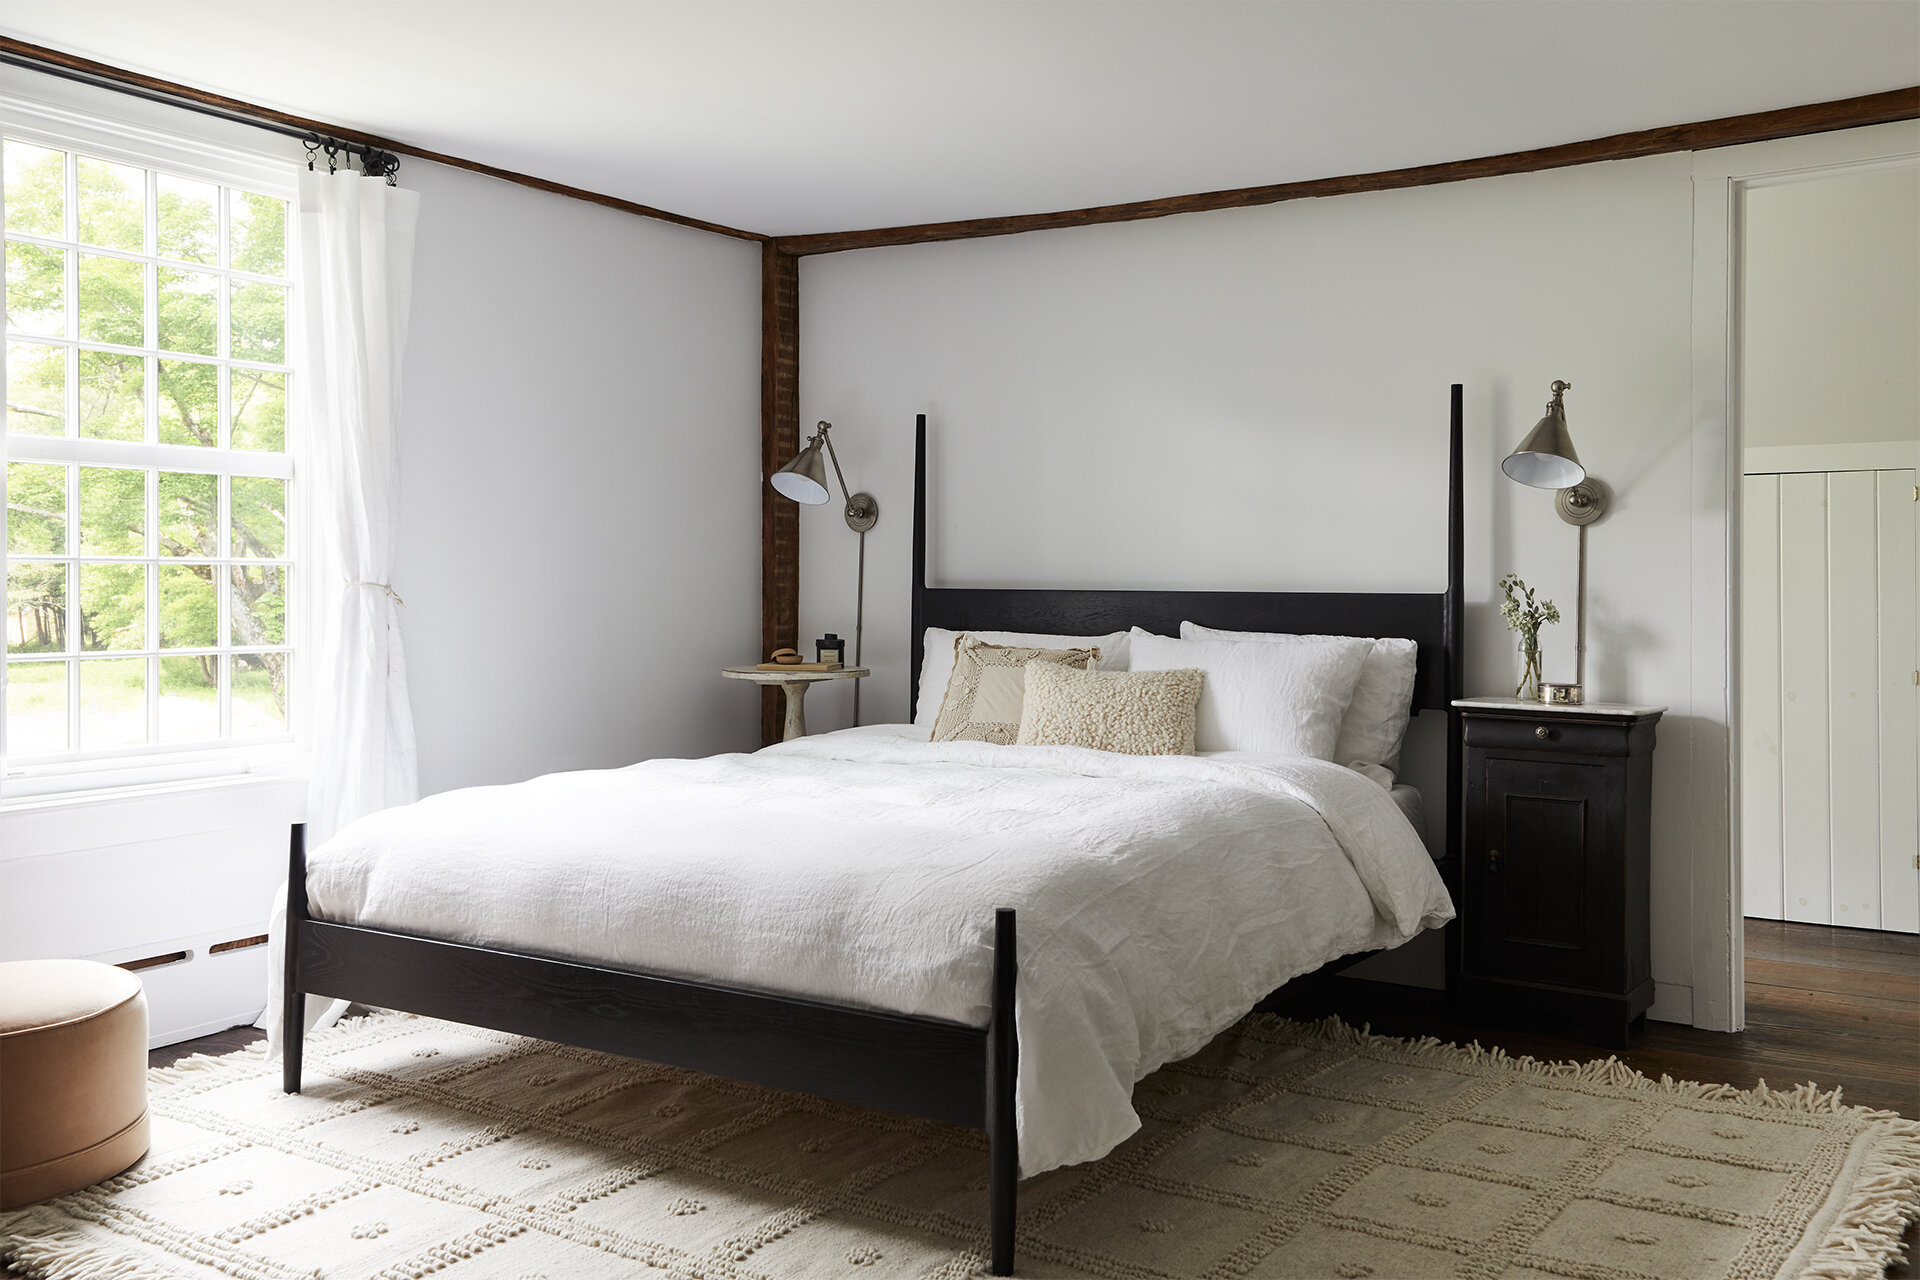 nune_Bruey Cottage_master bedroom_01.jpg